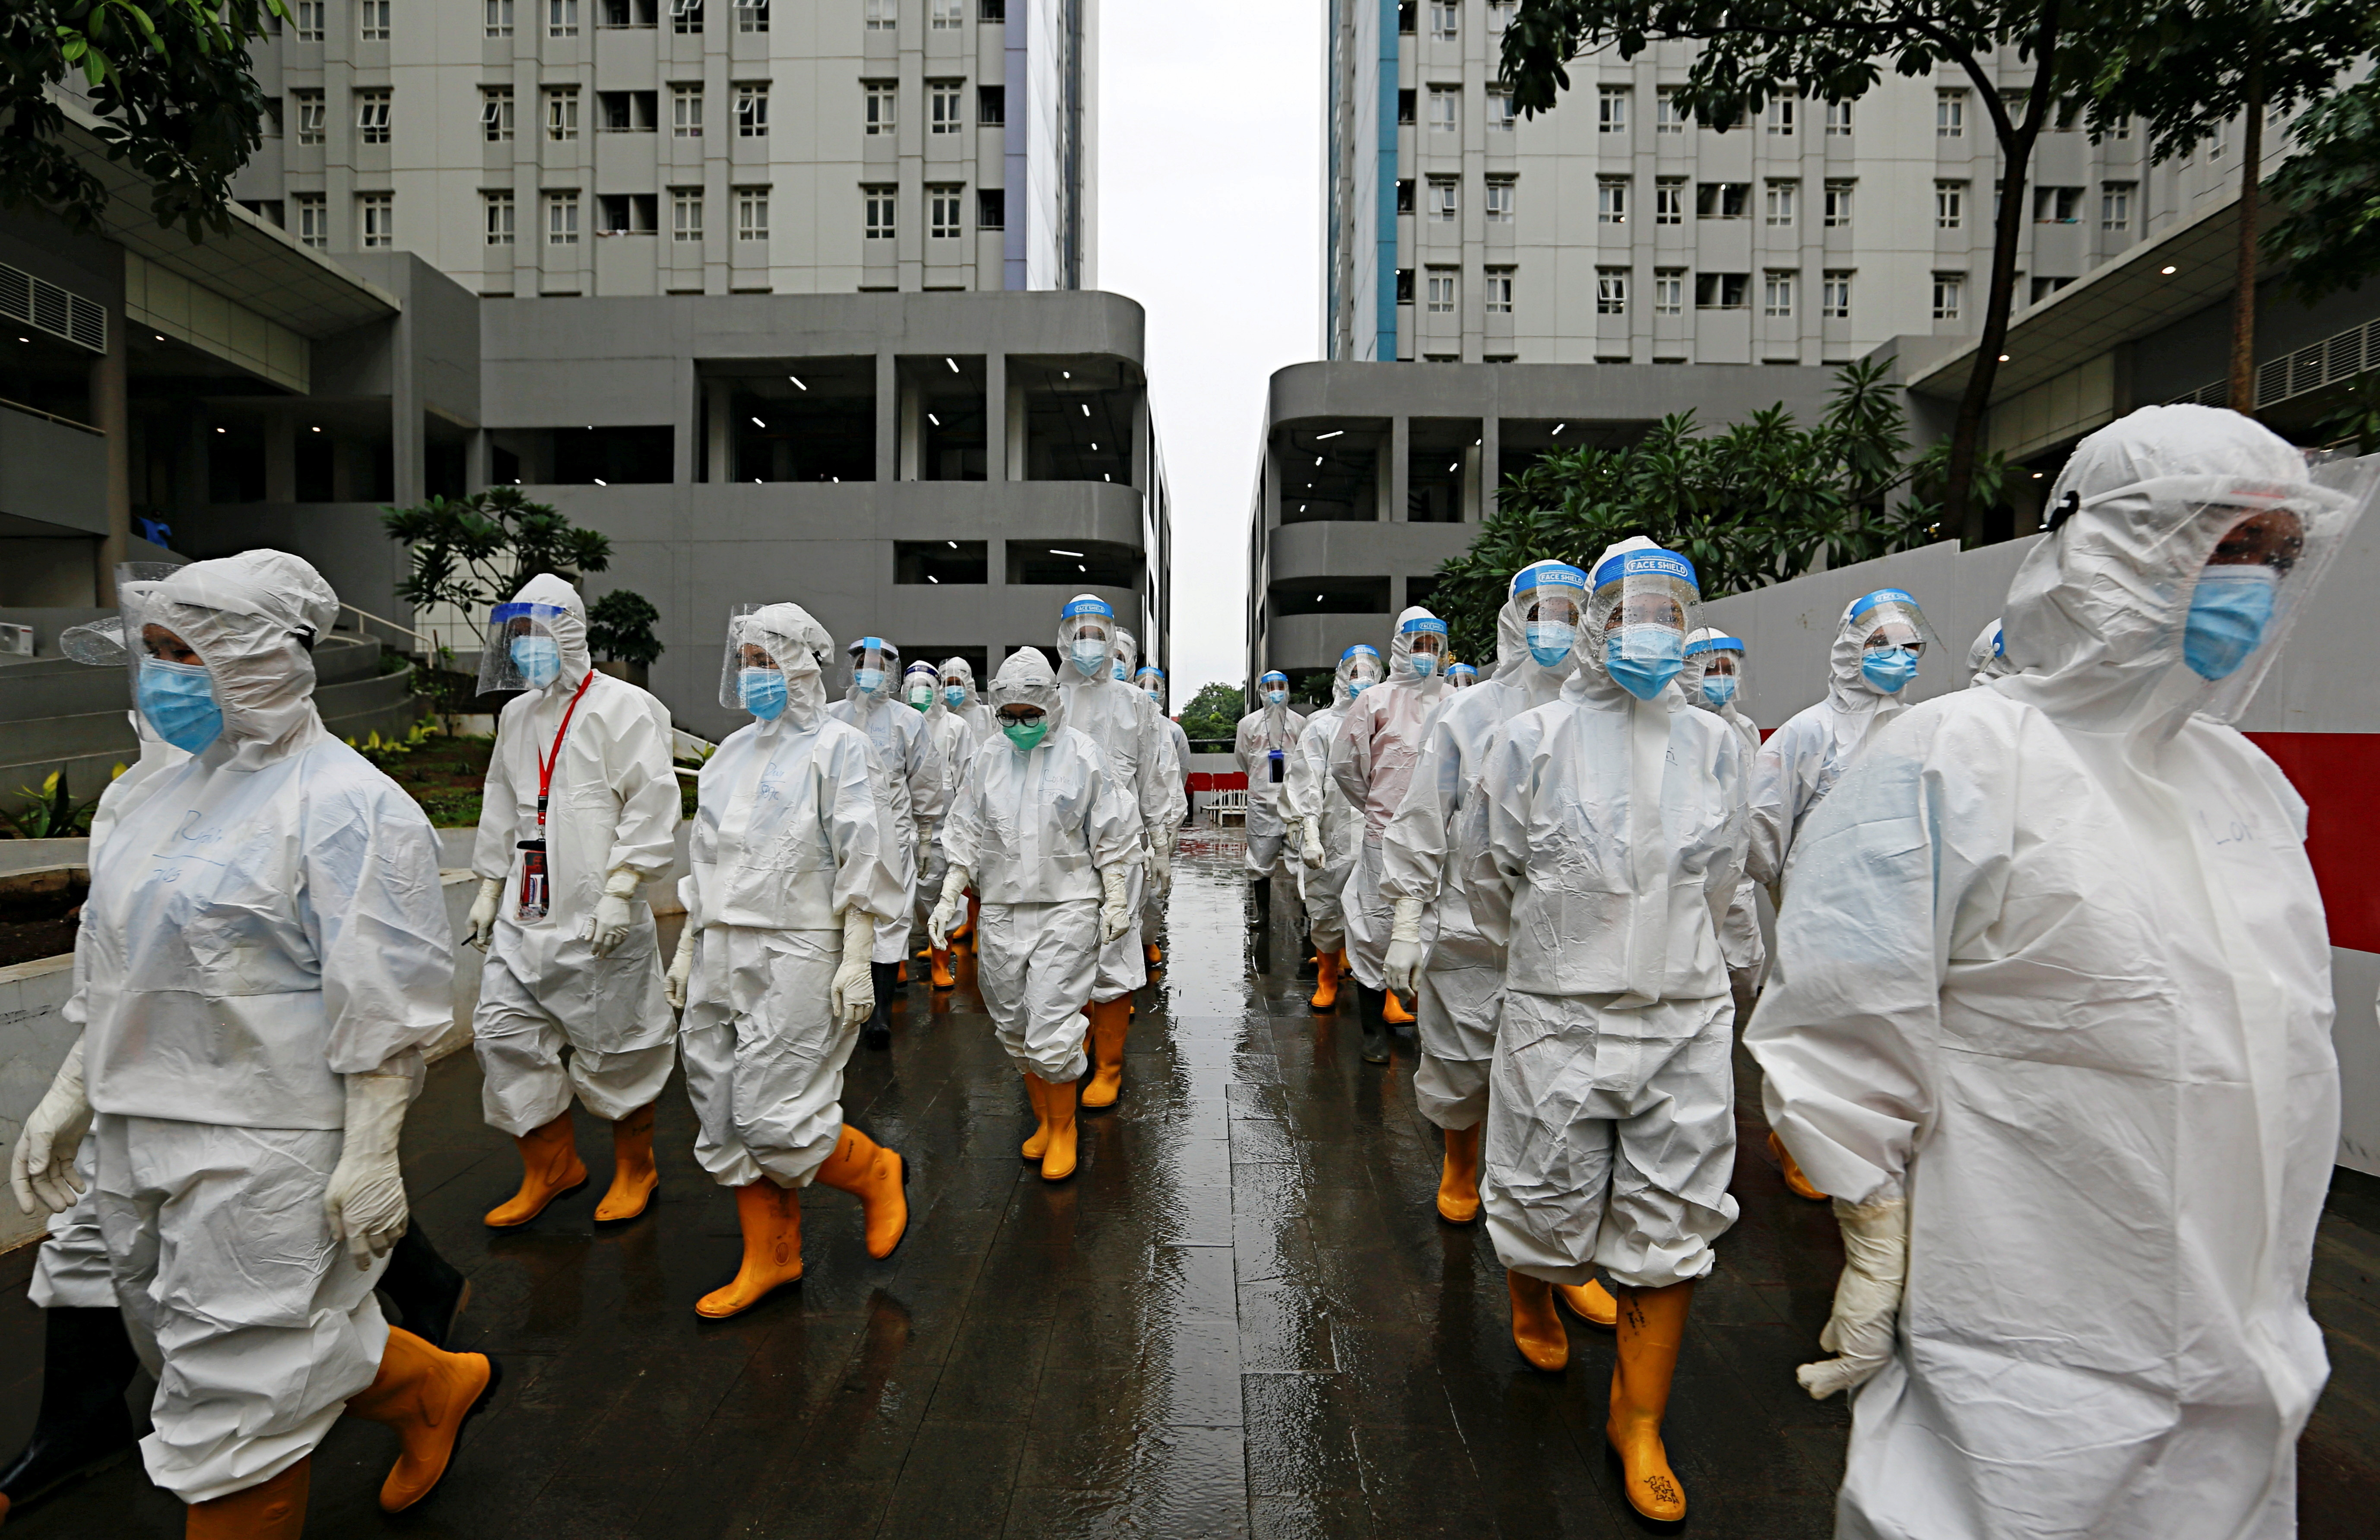 Healthcare workers wearing personal protective equipment (PPE) prepare to treat patients at the emergency hospital for coronavirus disease (COVID-19) in Athletes Village, Jakarta, Indonesia January 26, 2021. REUTERS/Ajeng Dinar Ulfiana     TPX IMAGES OF THE DAY - RC2LFL9HEVAO